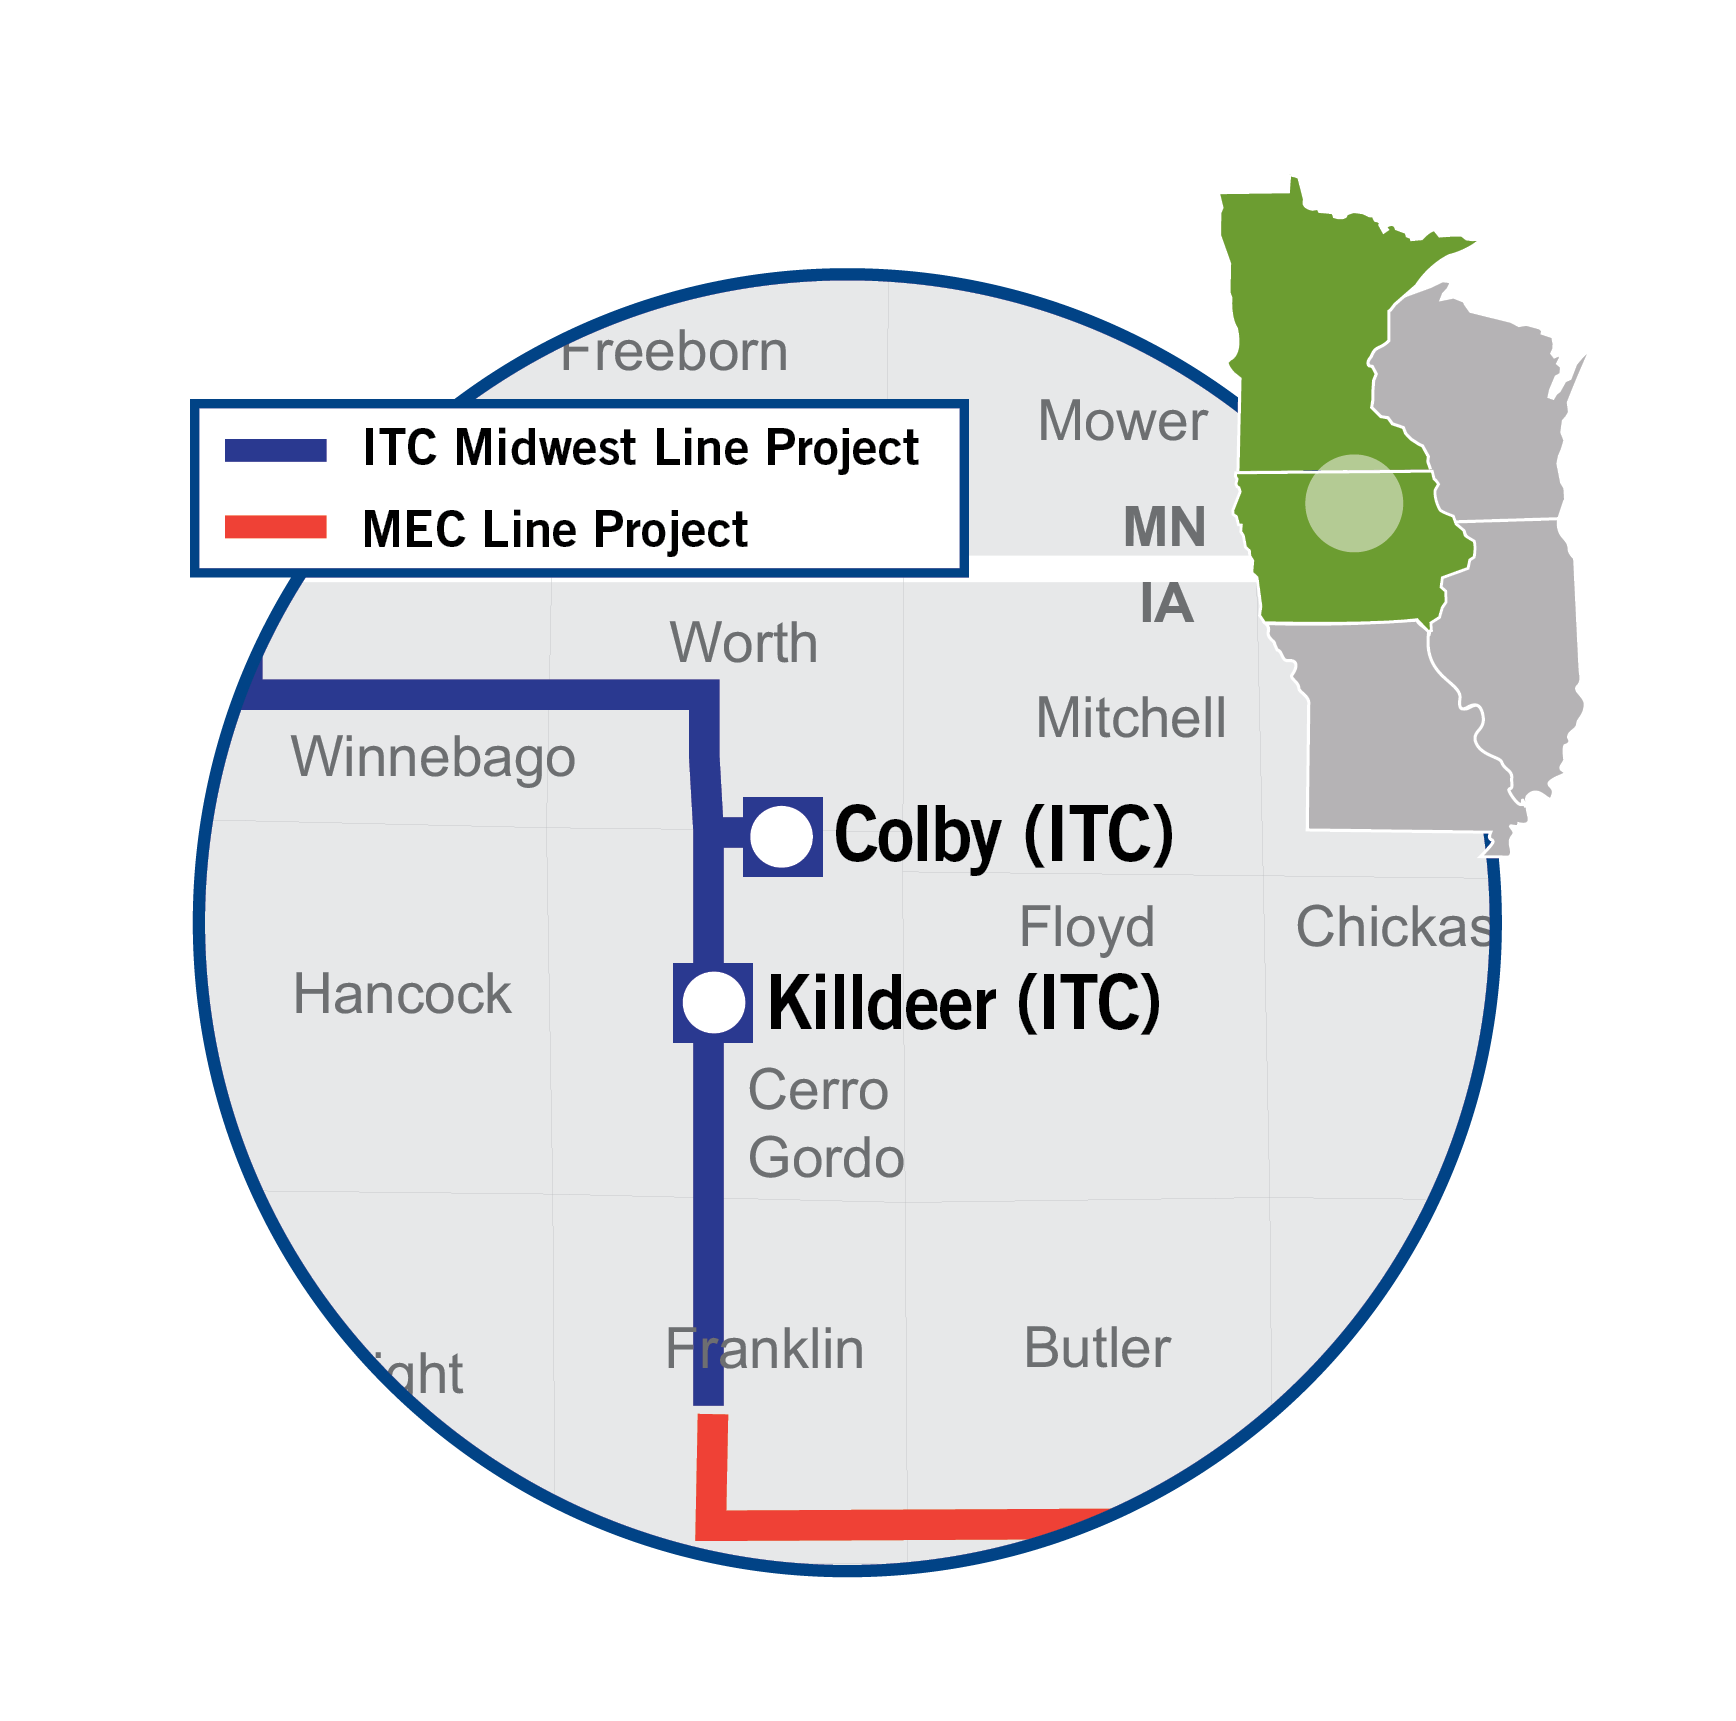 map_Colby-Killdeer_0119